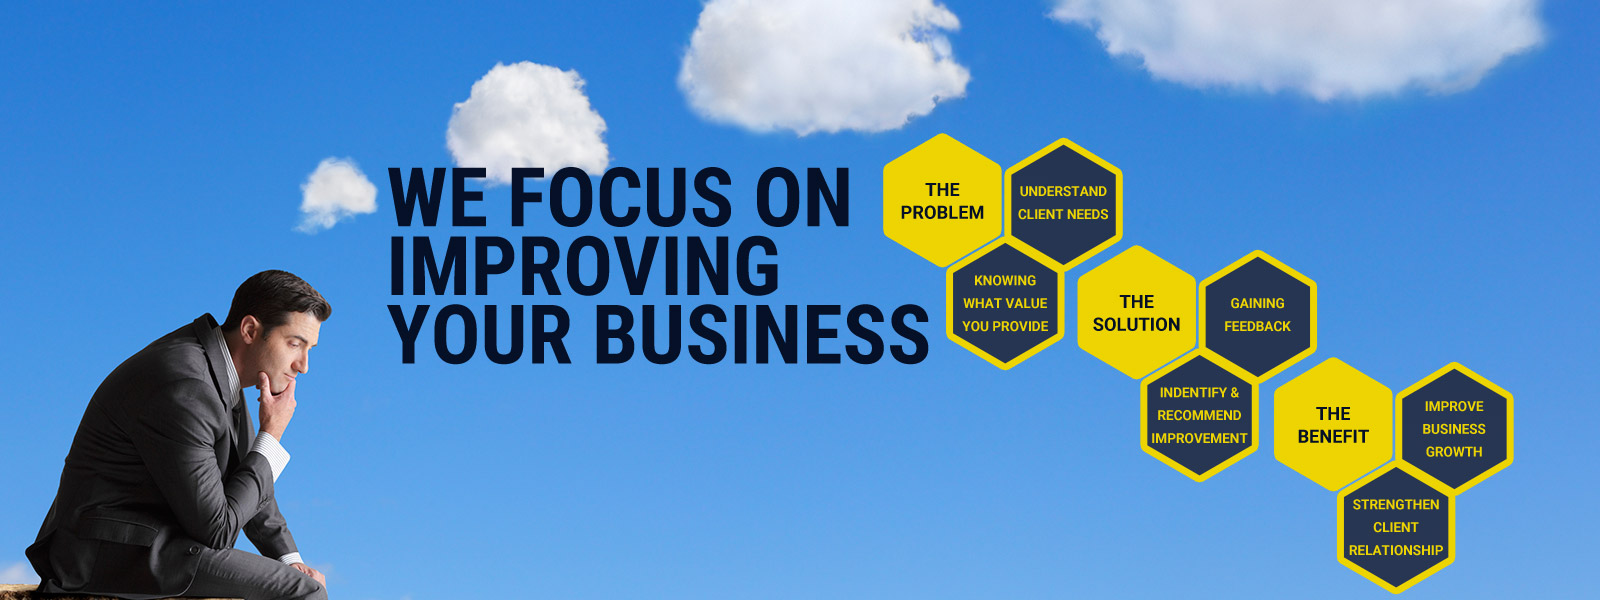 We focus on improving your business, creating solutions to improve your profitability